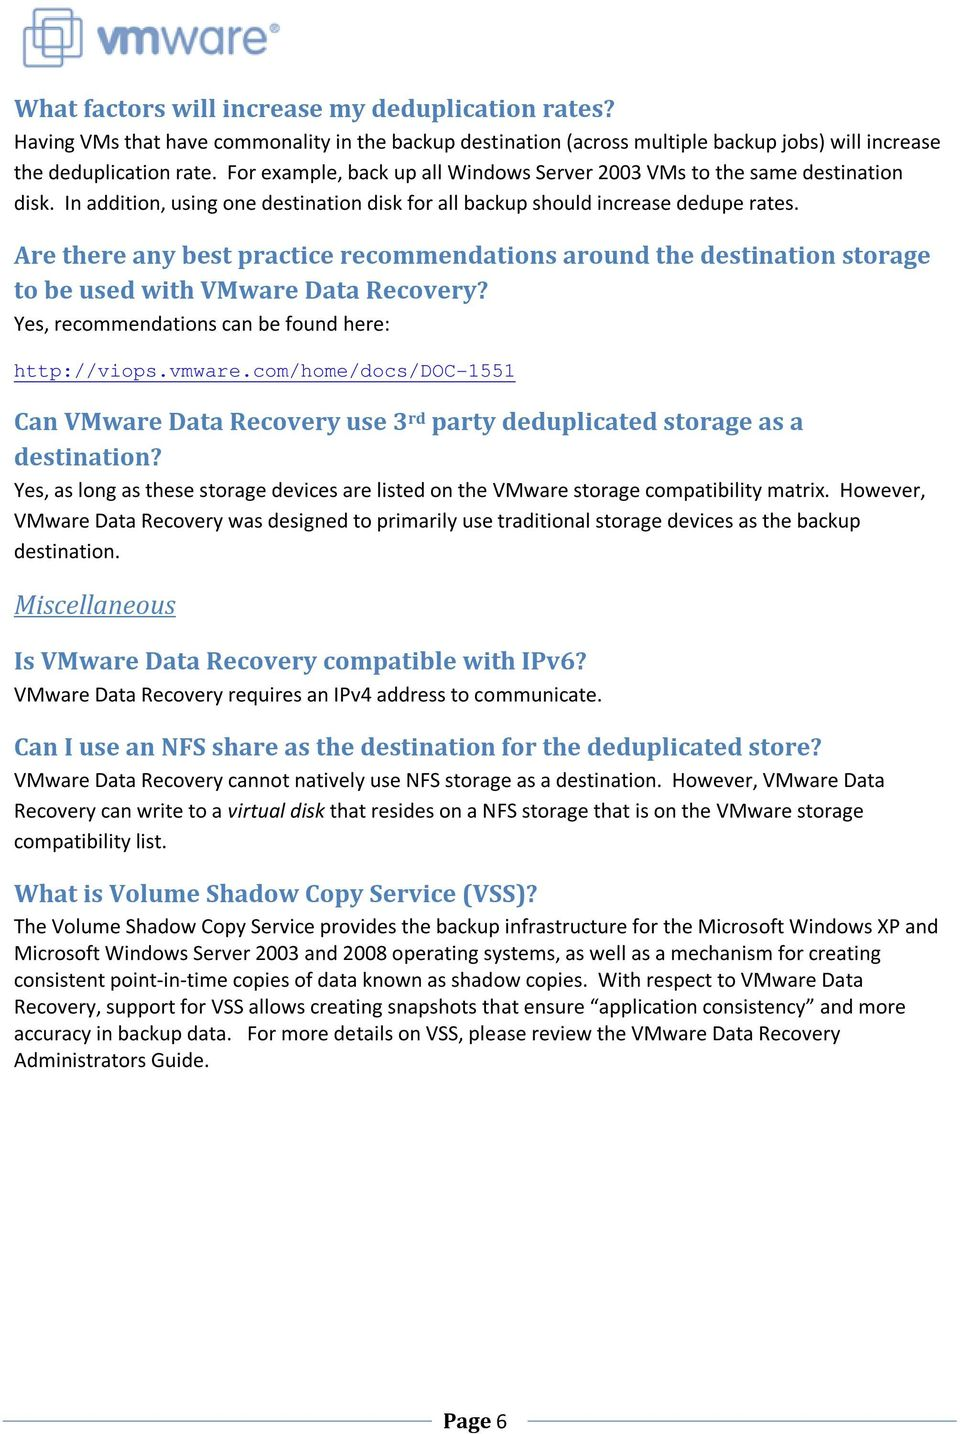 Are there any best practice recommendations around the destination storage to be used with VMware Data Recovery? Yes, recommendations can be found here: http://viops.vmware.